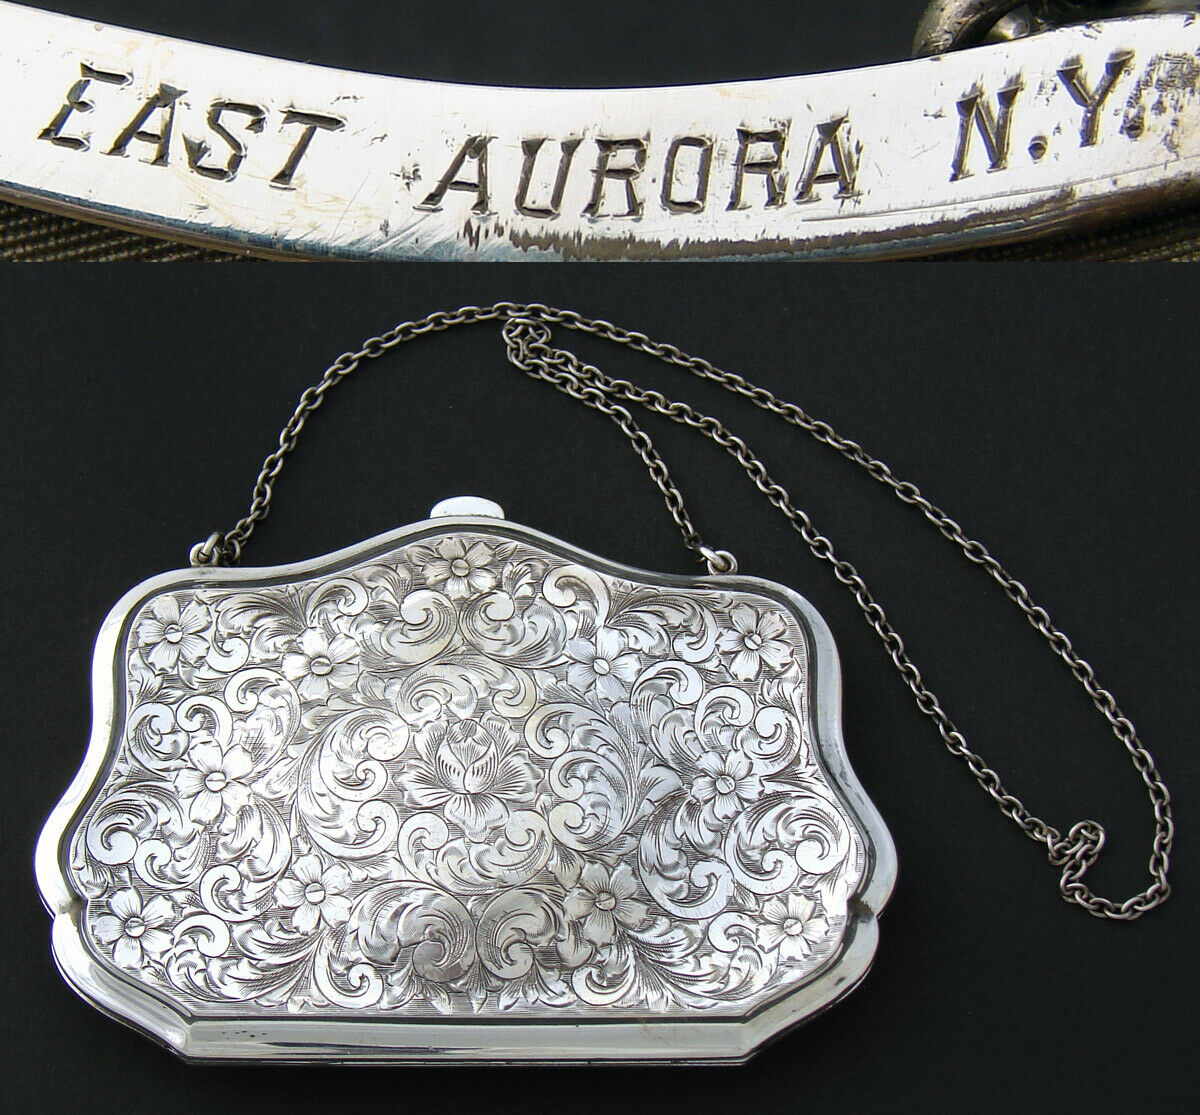 "Antique Sterling Silver 4.25"" Purse or Hand Bag, Ornate Decoration, ID'd Owner"